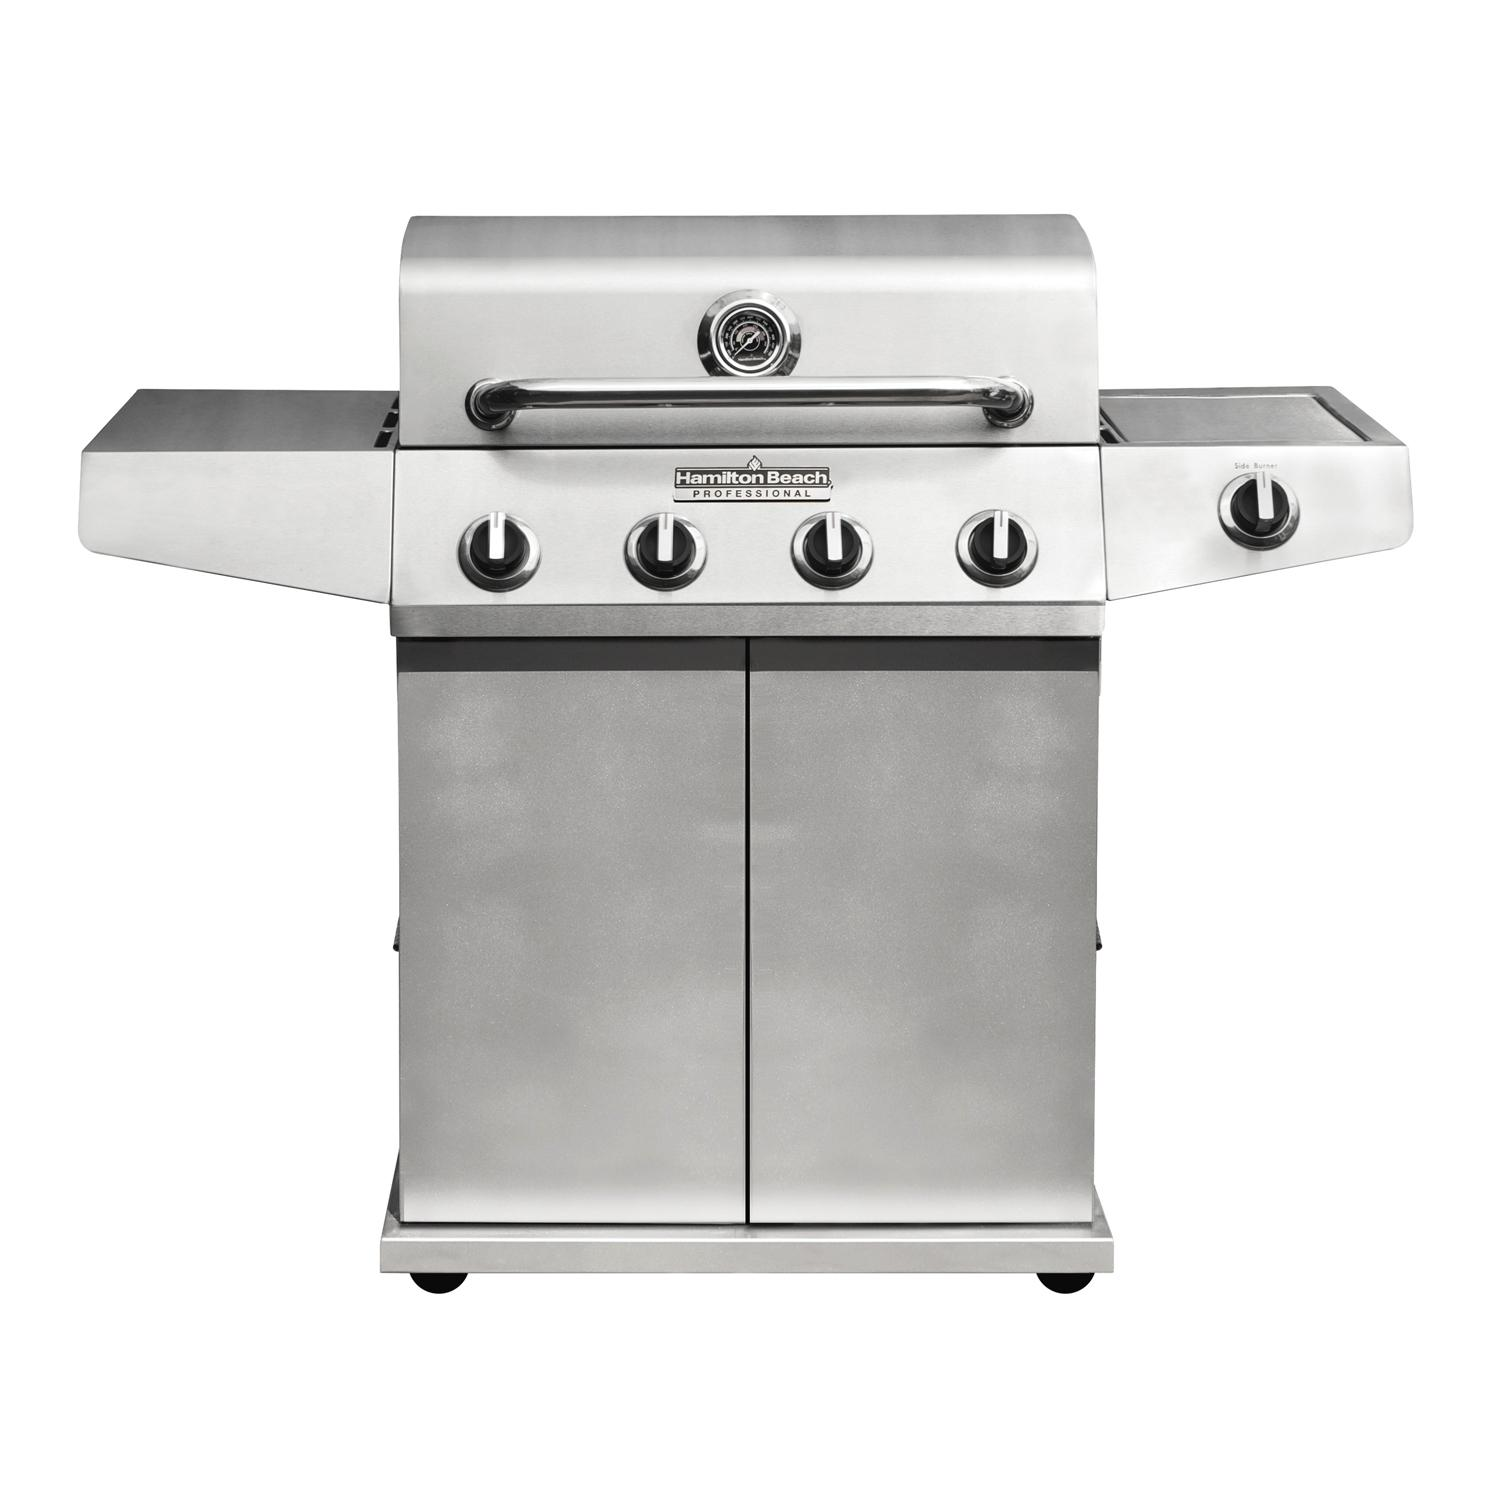 843-quick-assembly-grill